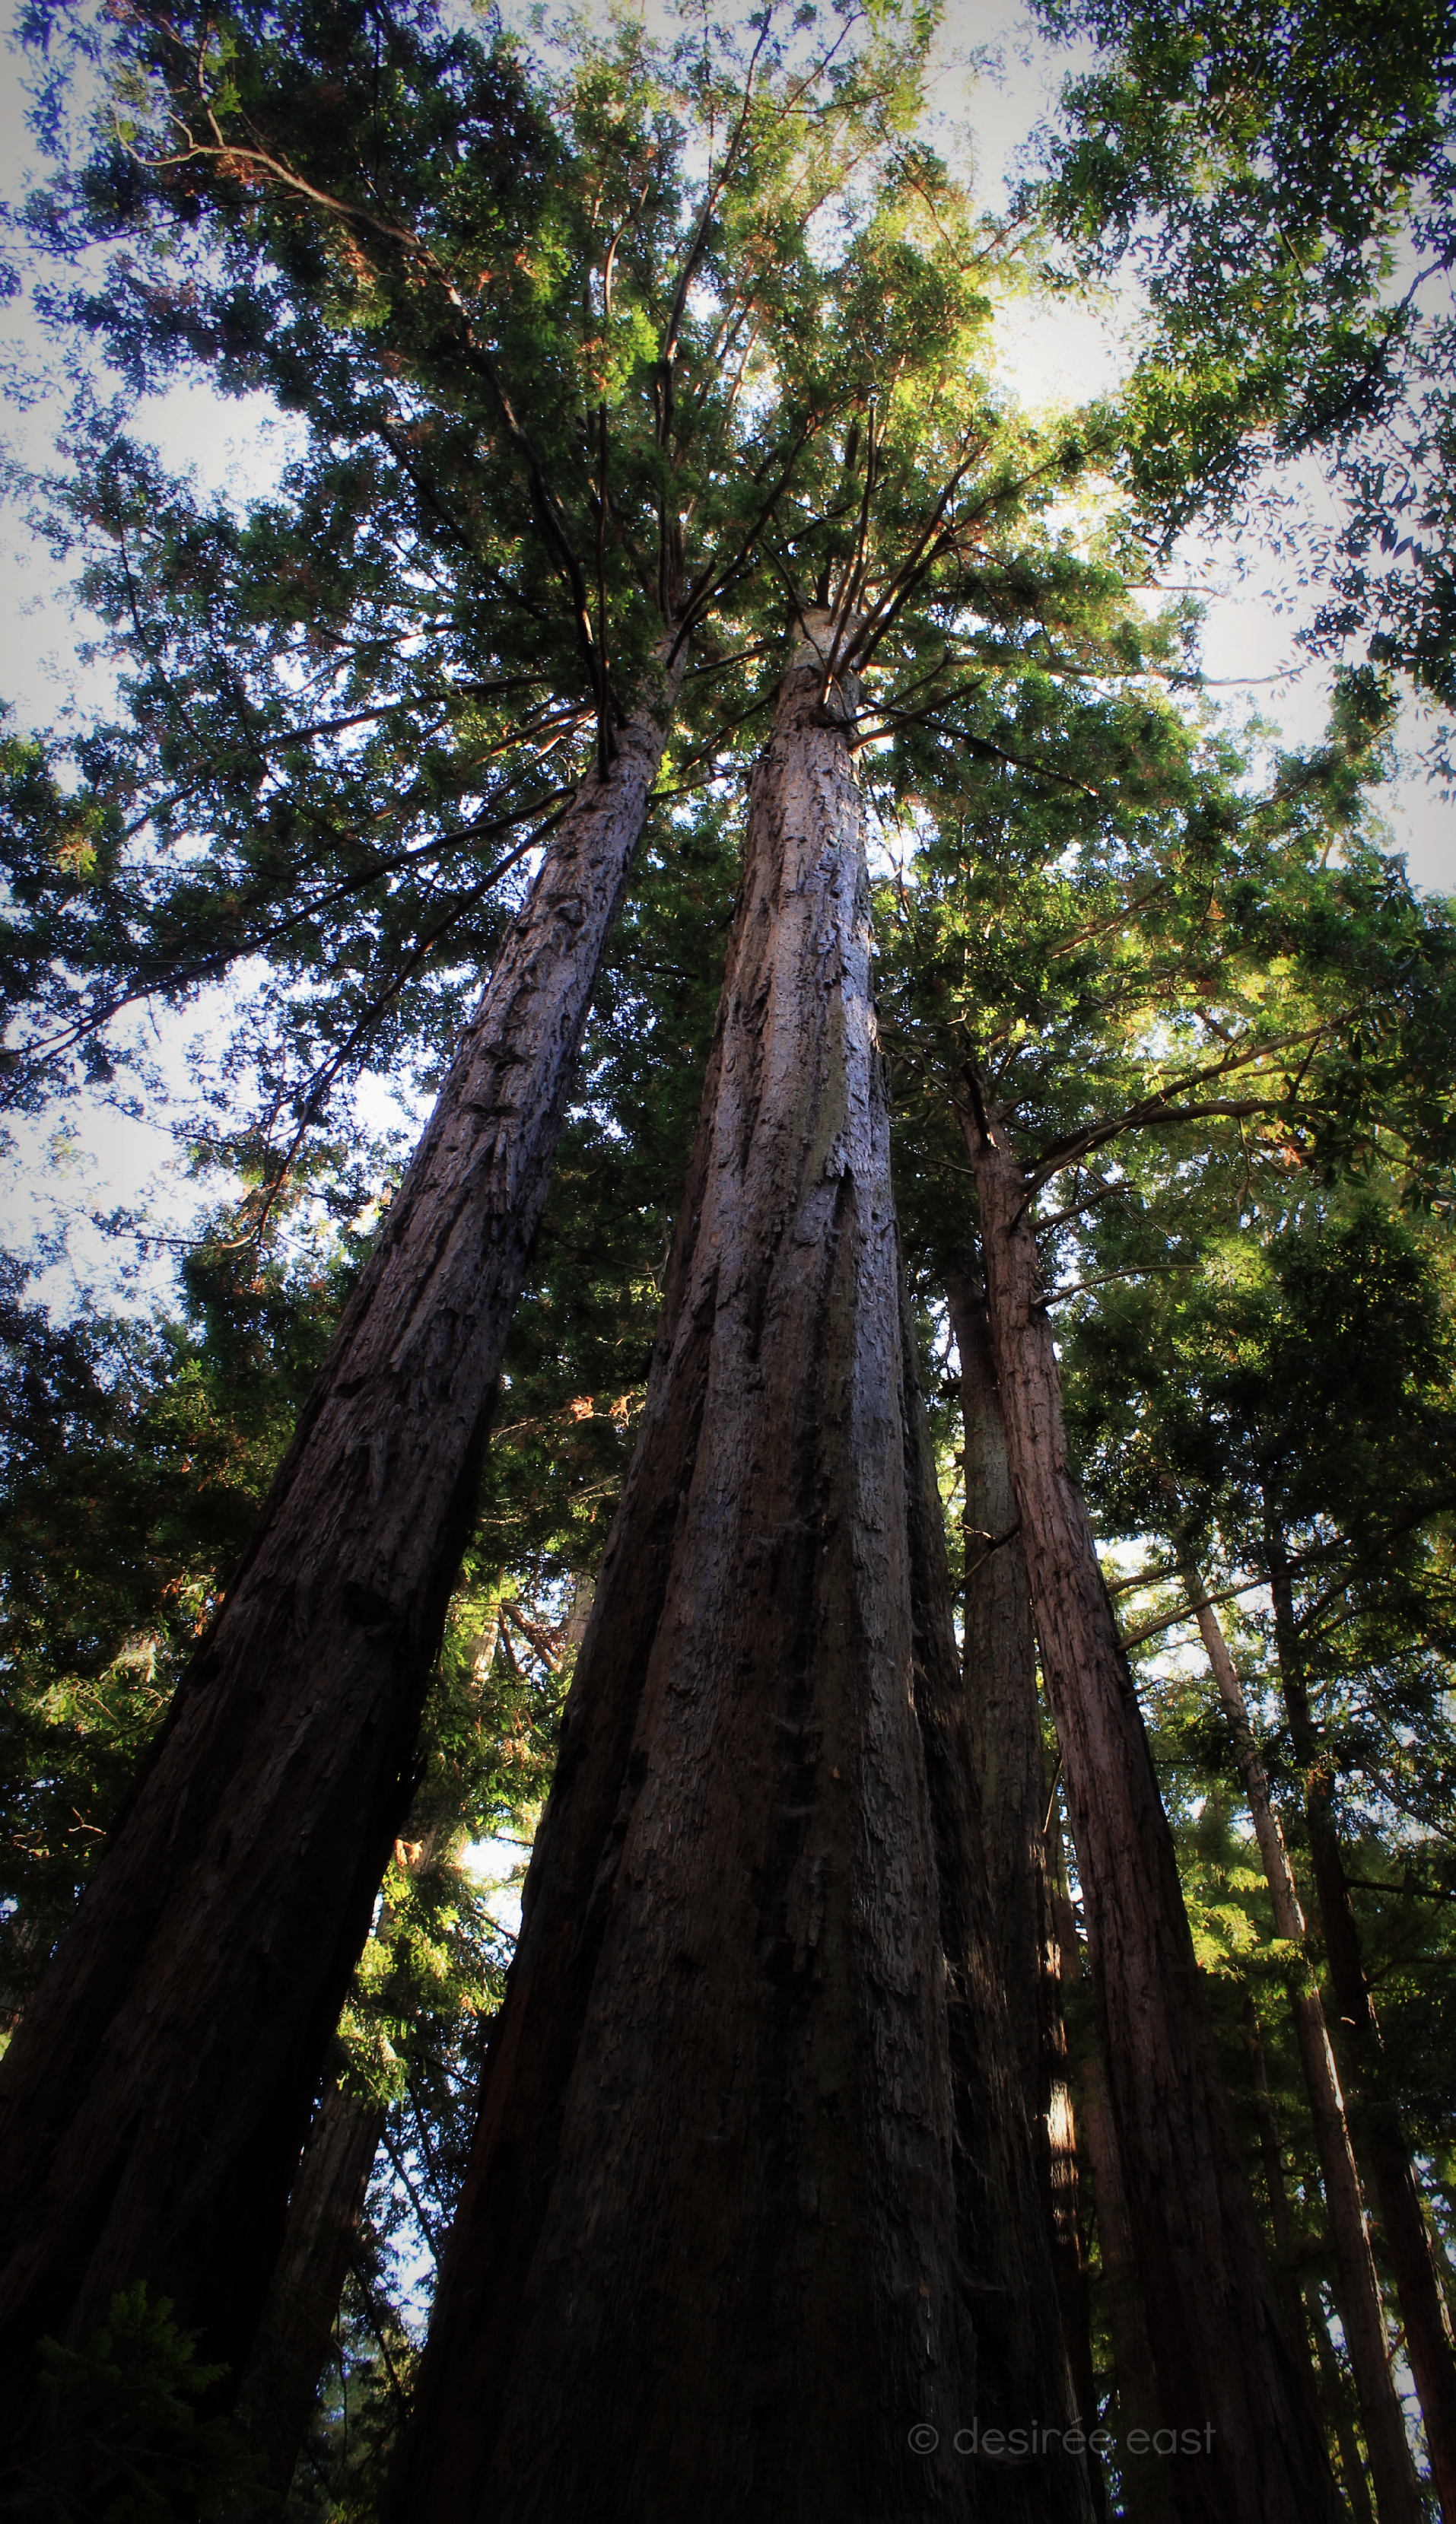 statuesque beauties. sequoia sempervirens - coast redwoods. big sur, california. photo by desiree east